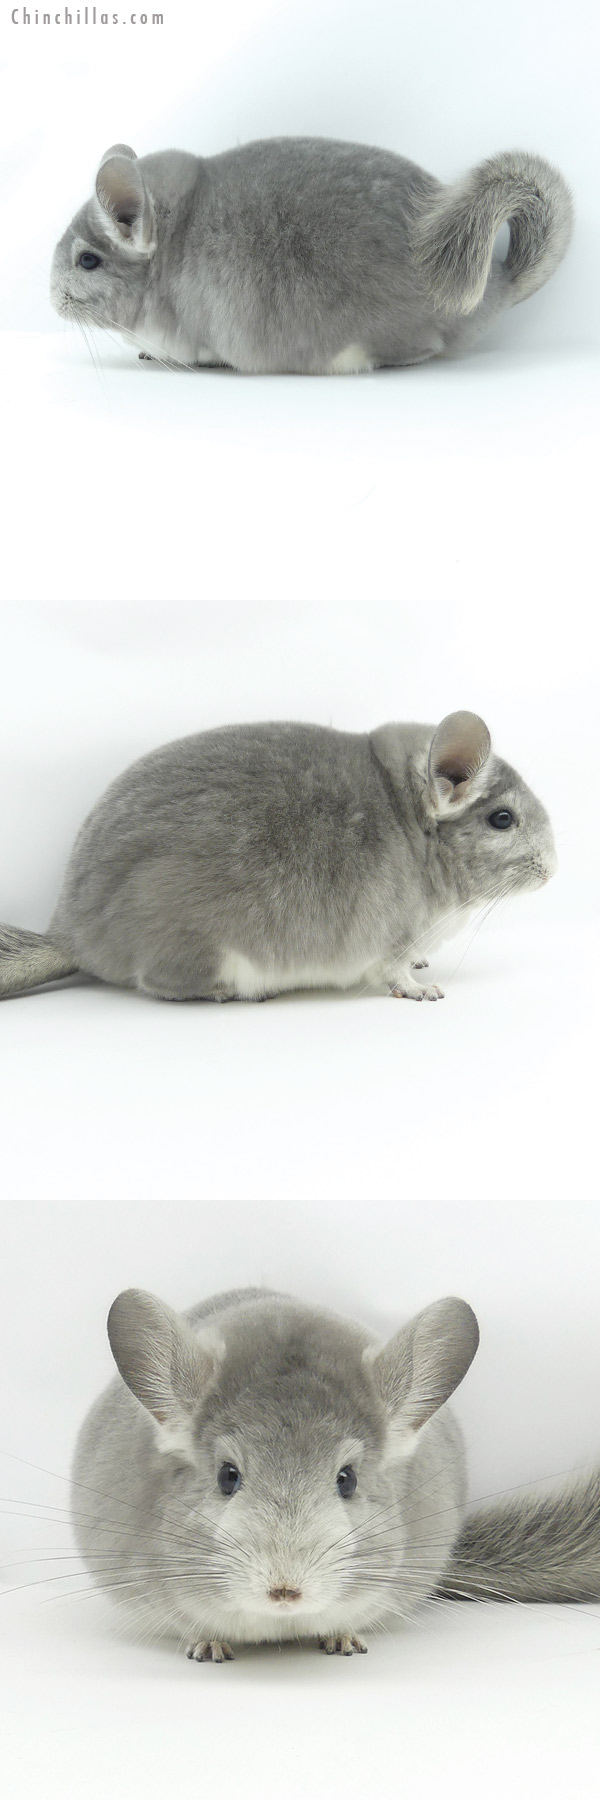 19359 Large Blocky Premium Production Quality Violet Fading White Female Chinchilla